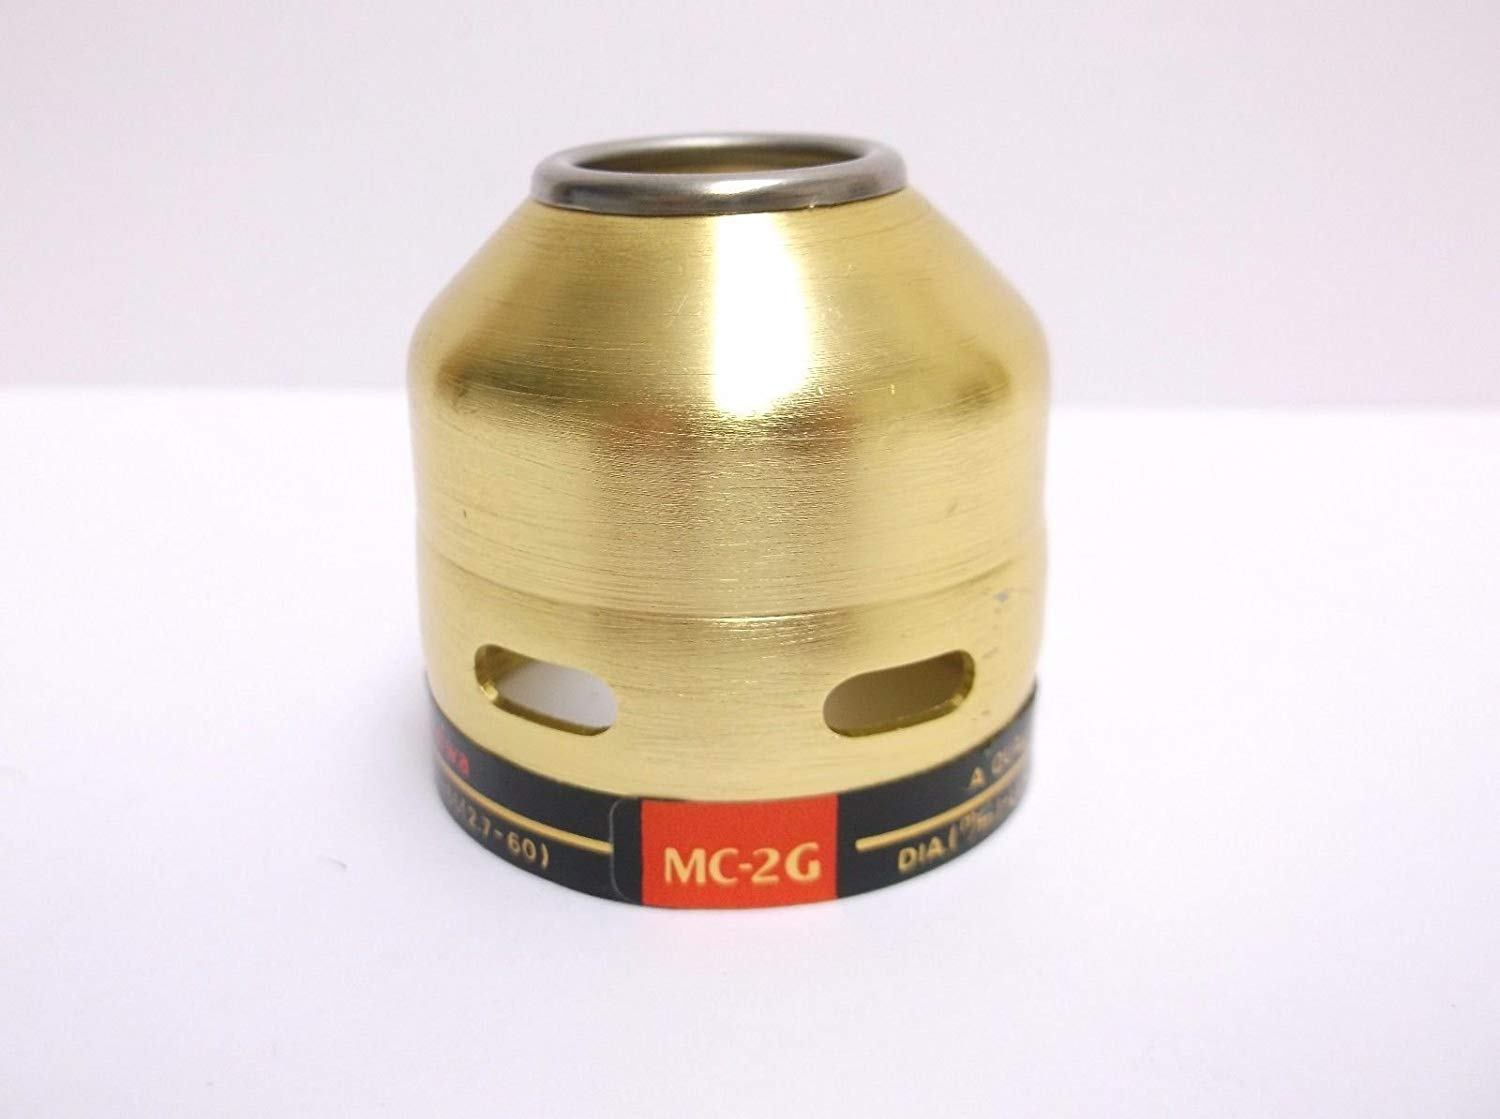 15cef610c3d Get Quotations · Daiwa Spinning Reel Part - K06-6101 Minicast 2-G - Front  Cover